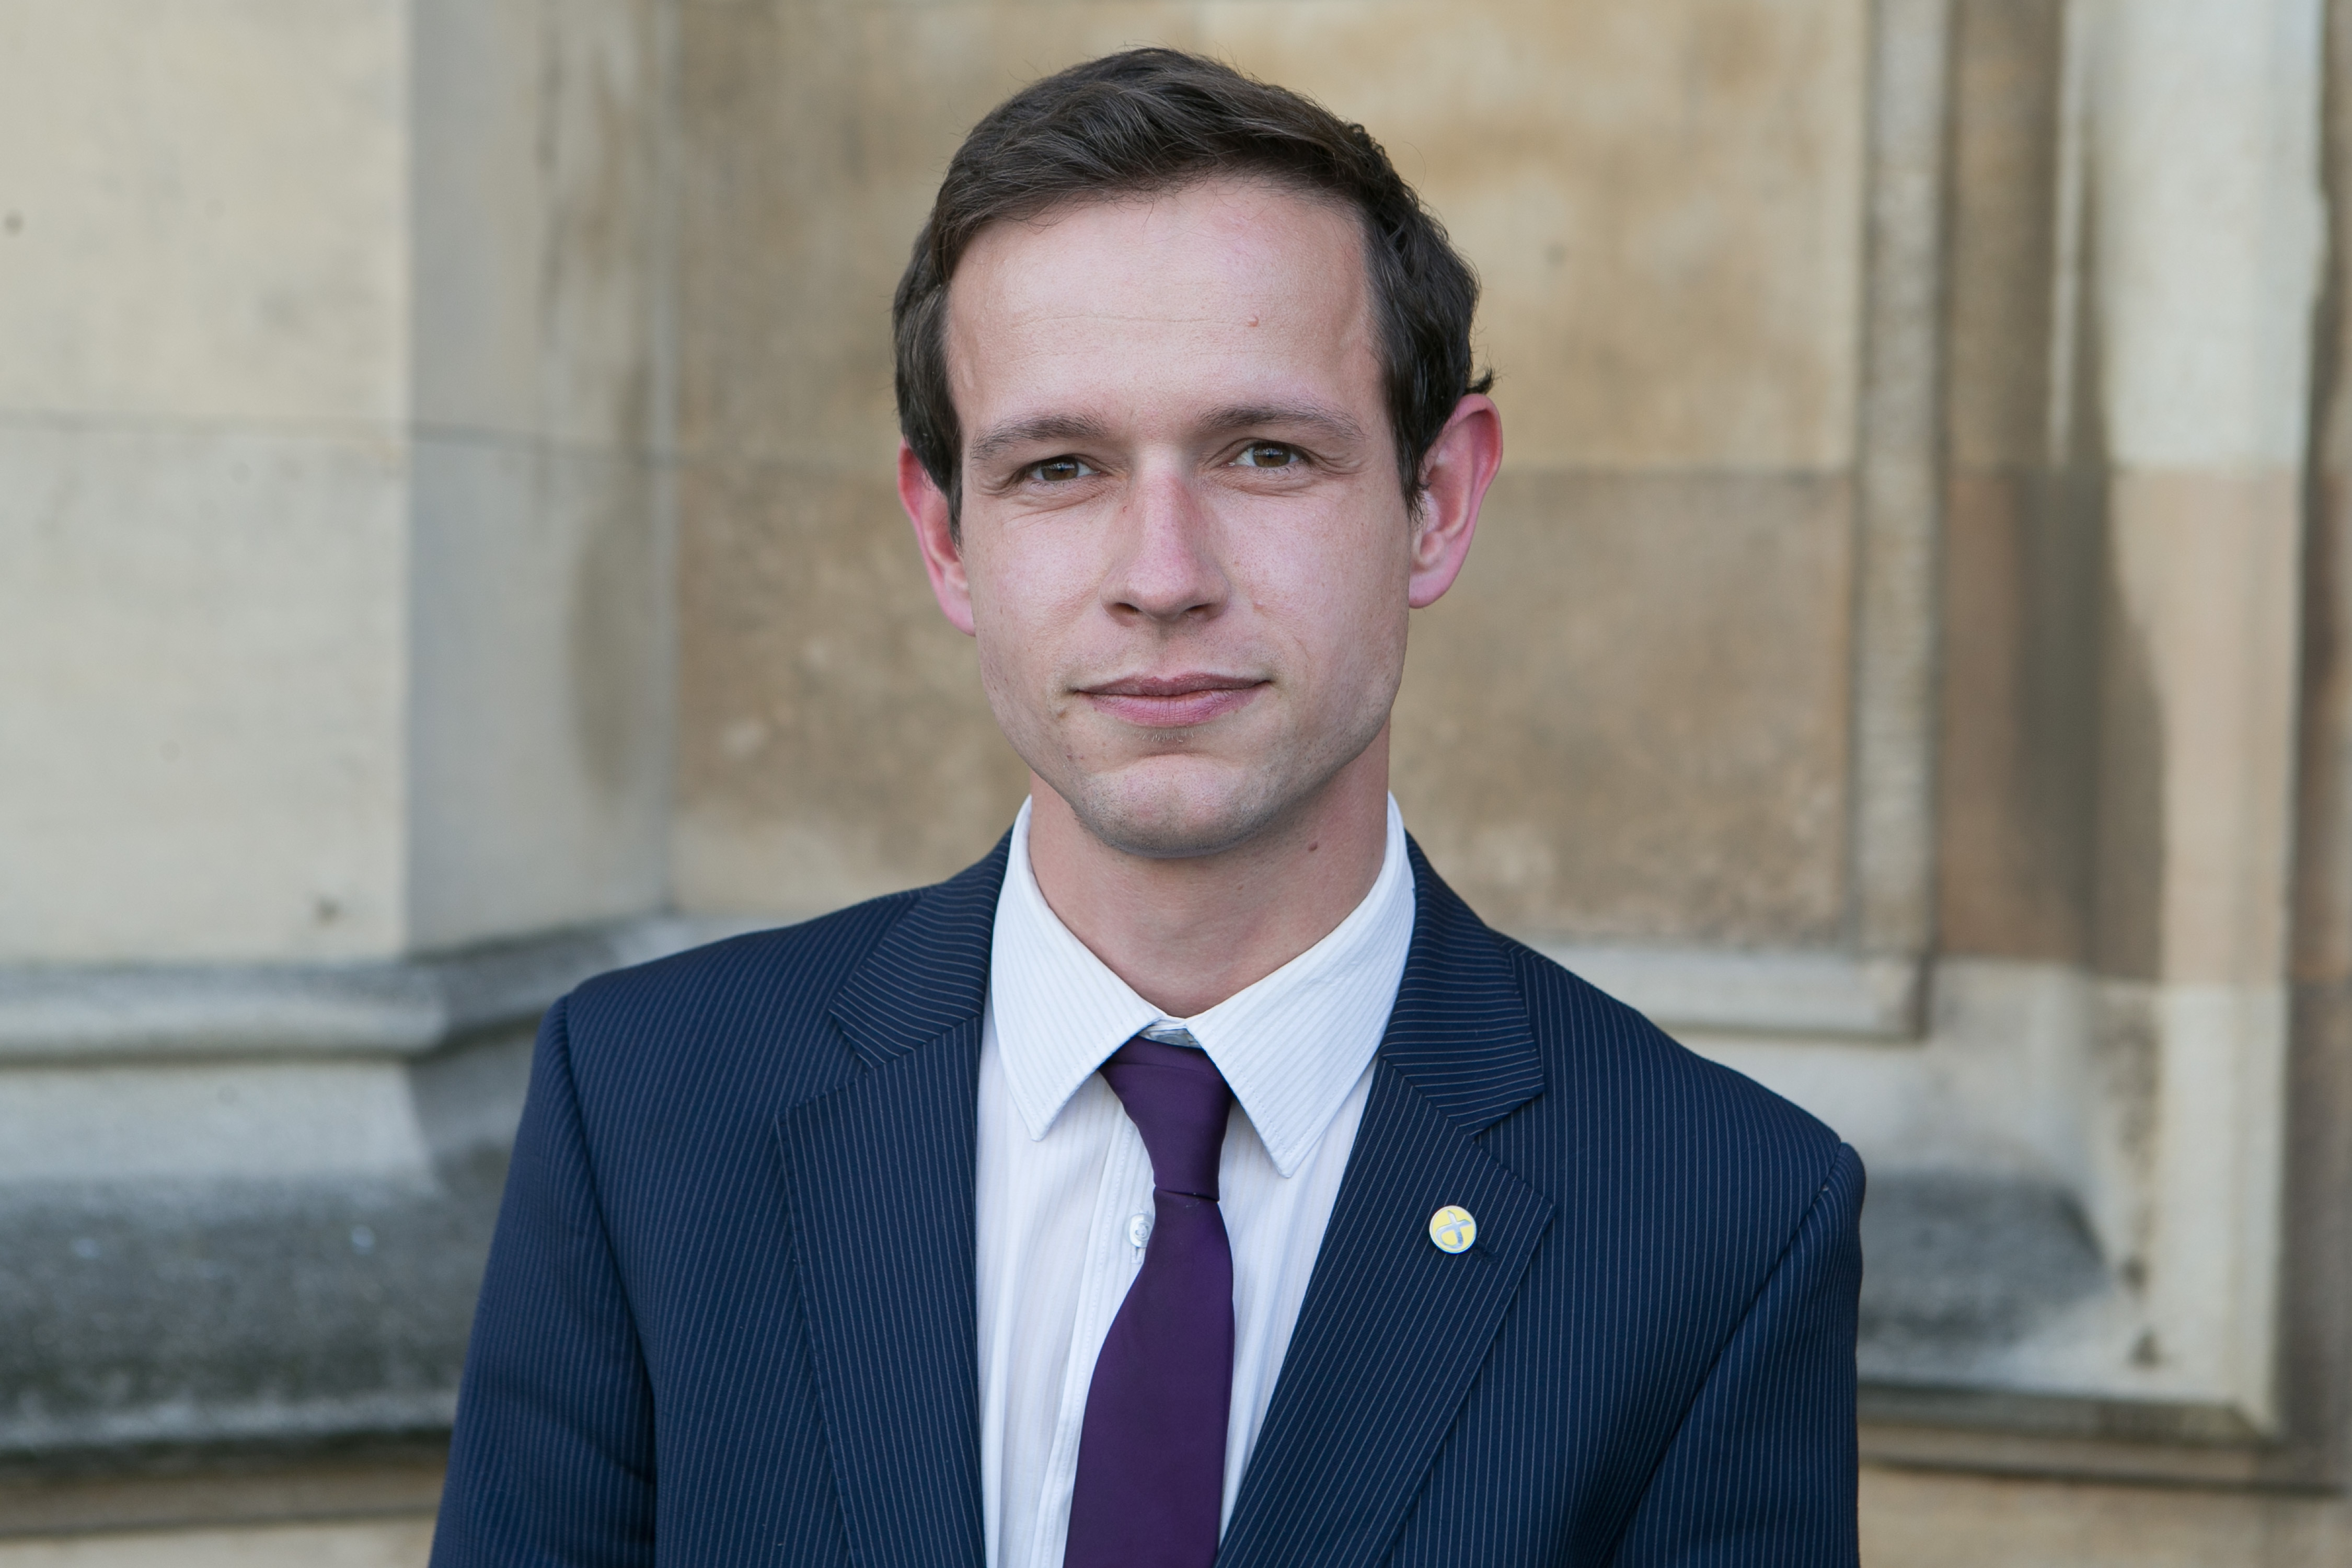 Callum McCaig Interview: Worst Thing About Parliament? 'The Tories. Is That